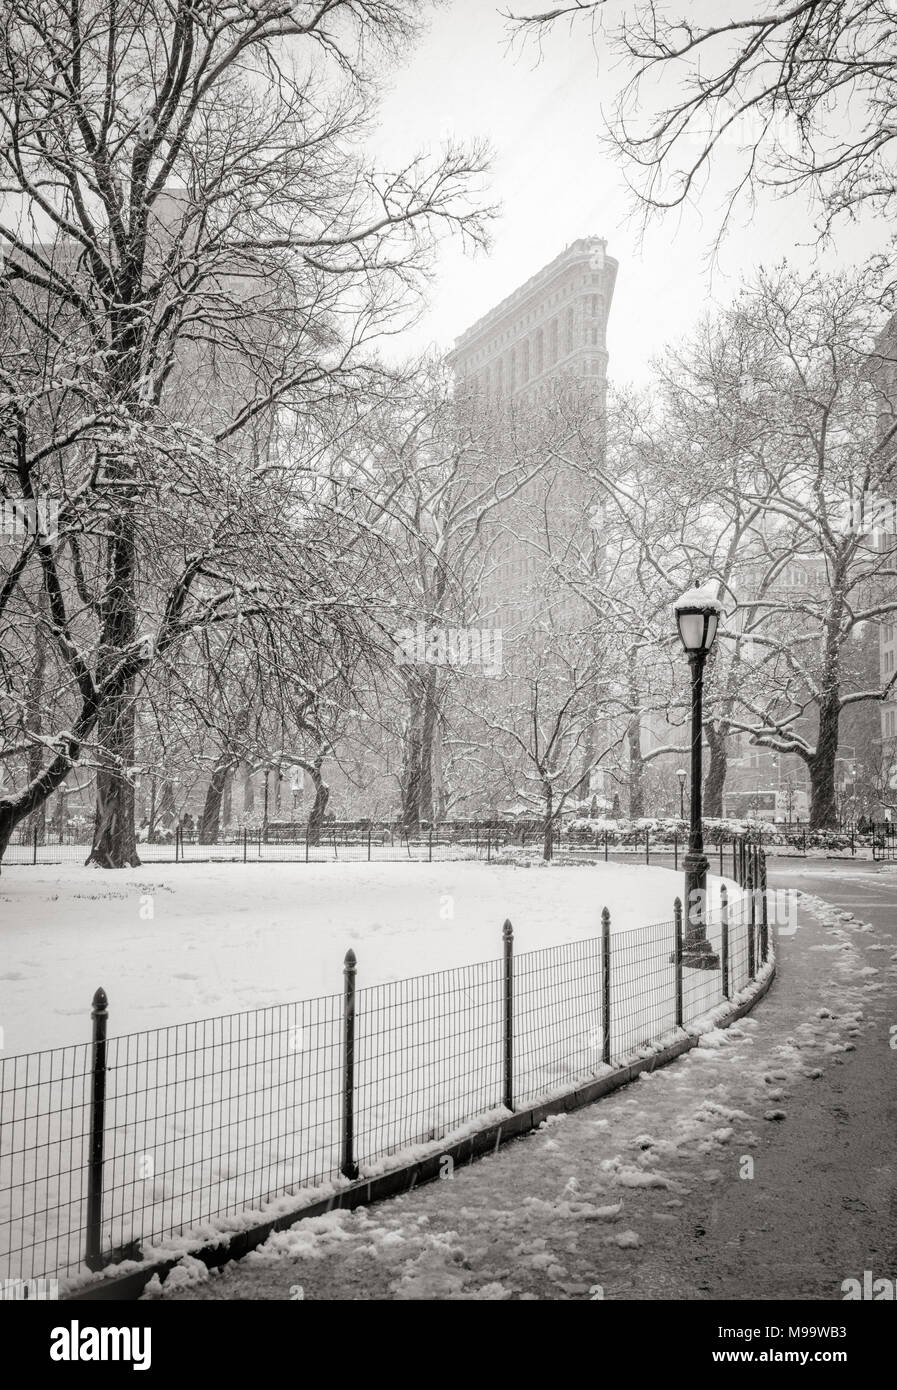 New York City, NY, Stati Uniti d'America - 21 Marzo 2018: Flatiron Building dal Madison Square Park con nevicata. (Bianco e nero) Flatiron District, Manhattan Immagini Stock